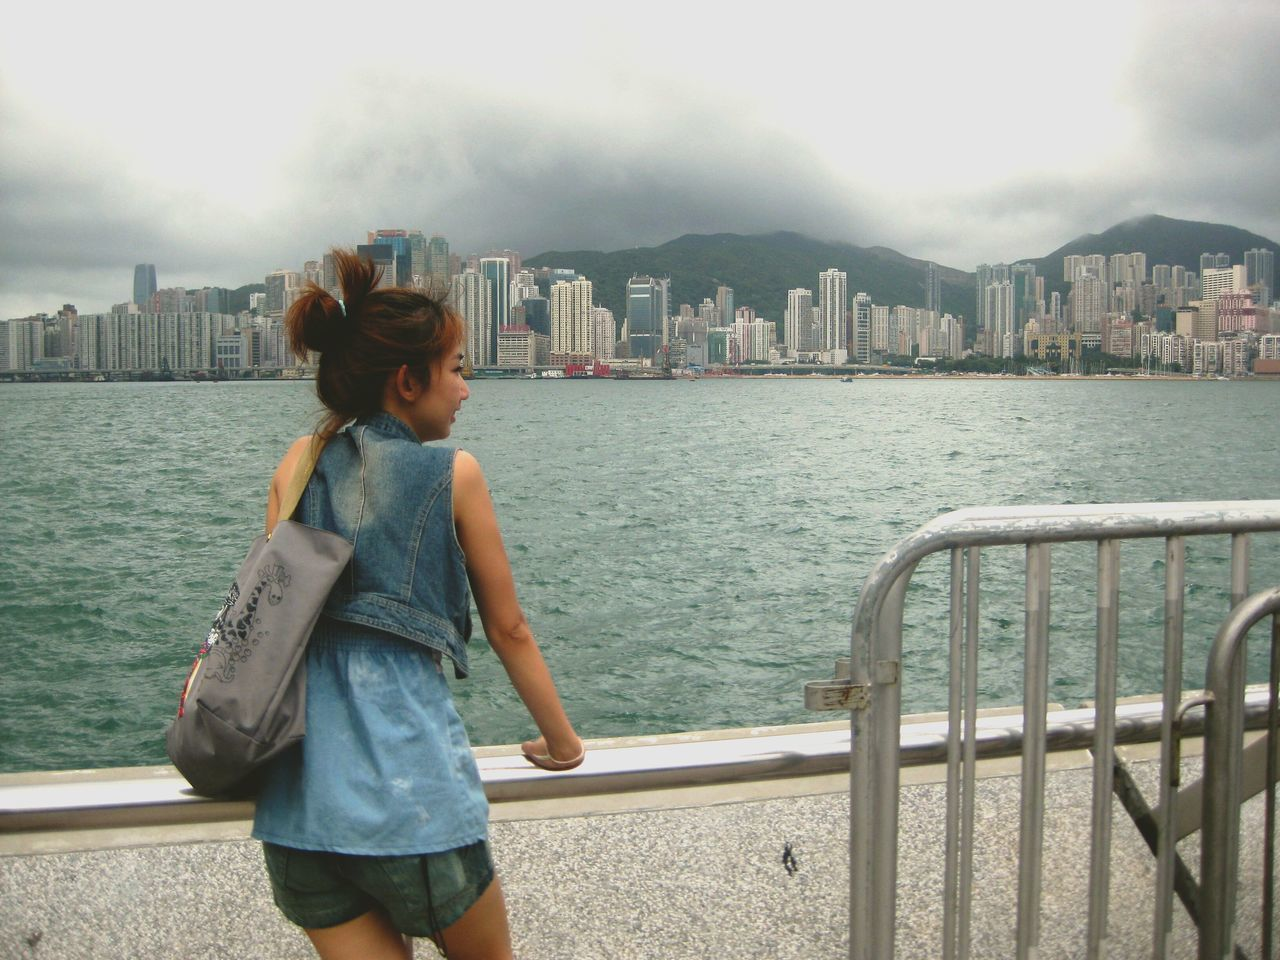 real people, architecture, building exterior, built structure, railing, cityscape, one person, casual clothing, city, outdoors, leisure activity, lifestyles, sky, standing, day, sea, water, mountain, skyscraper, coin-operated binoculars, young adult, nature